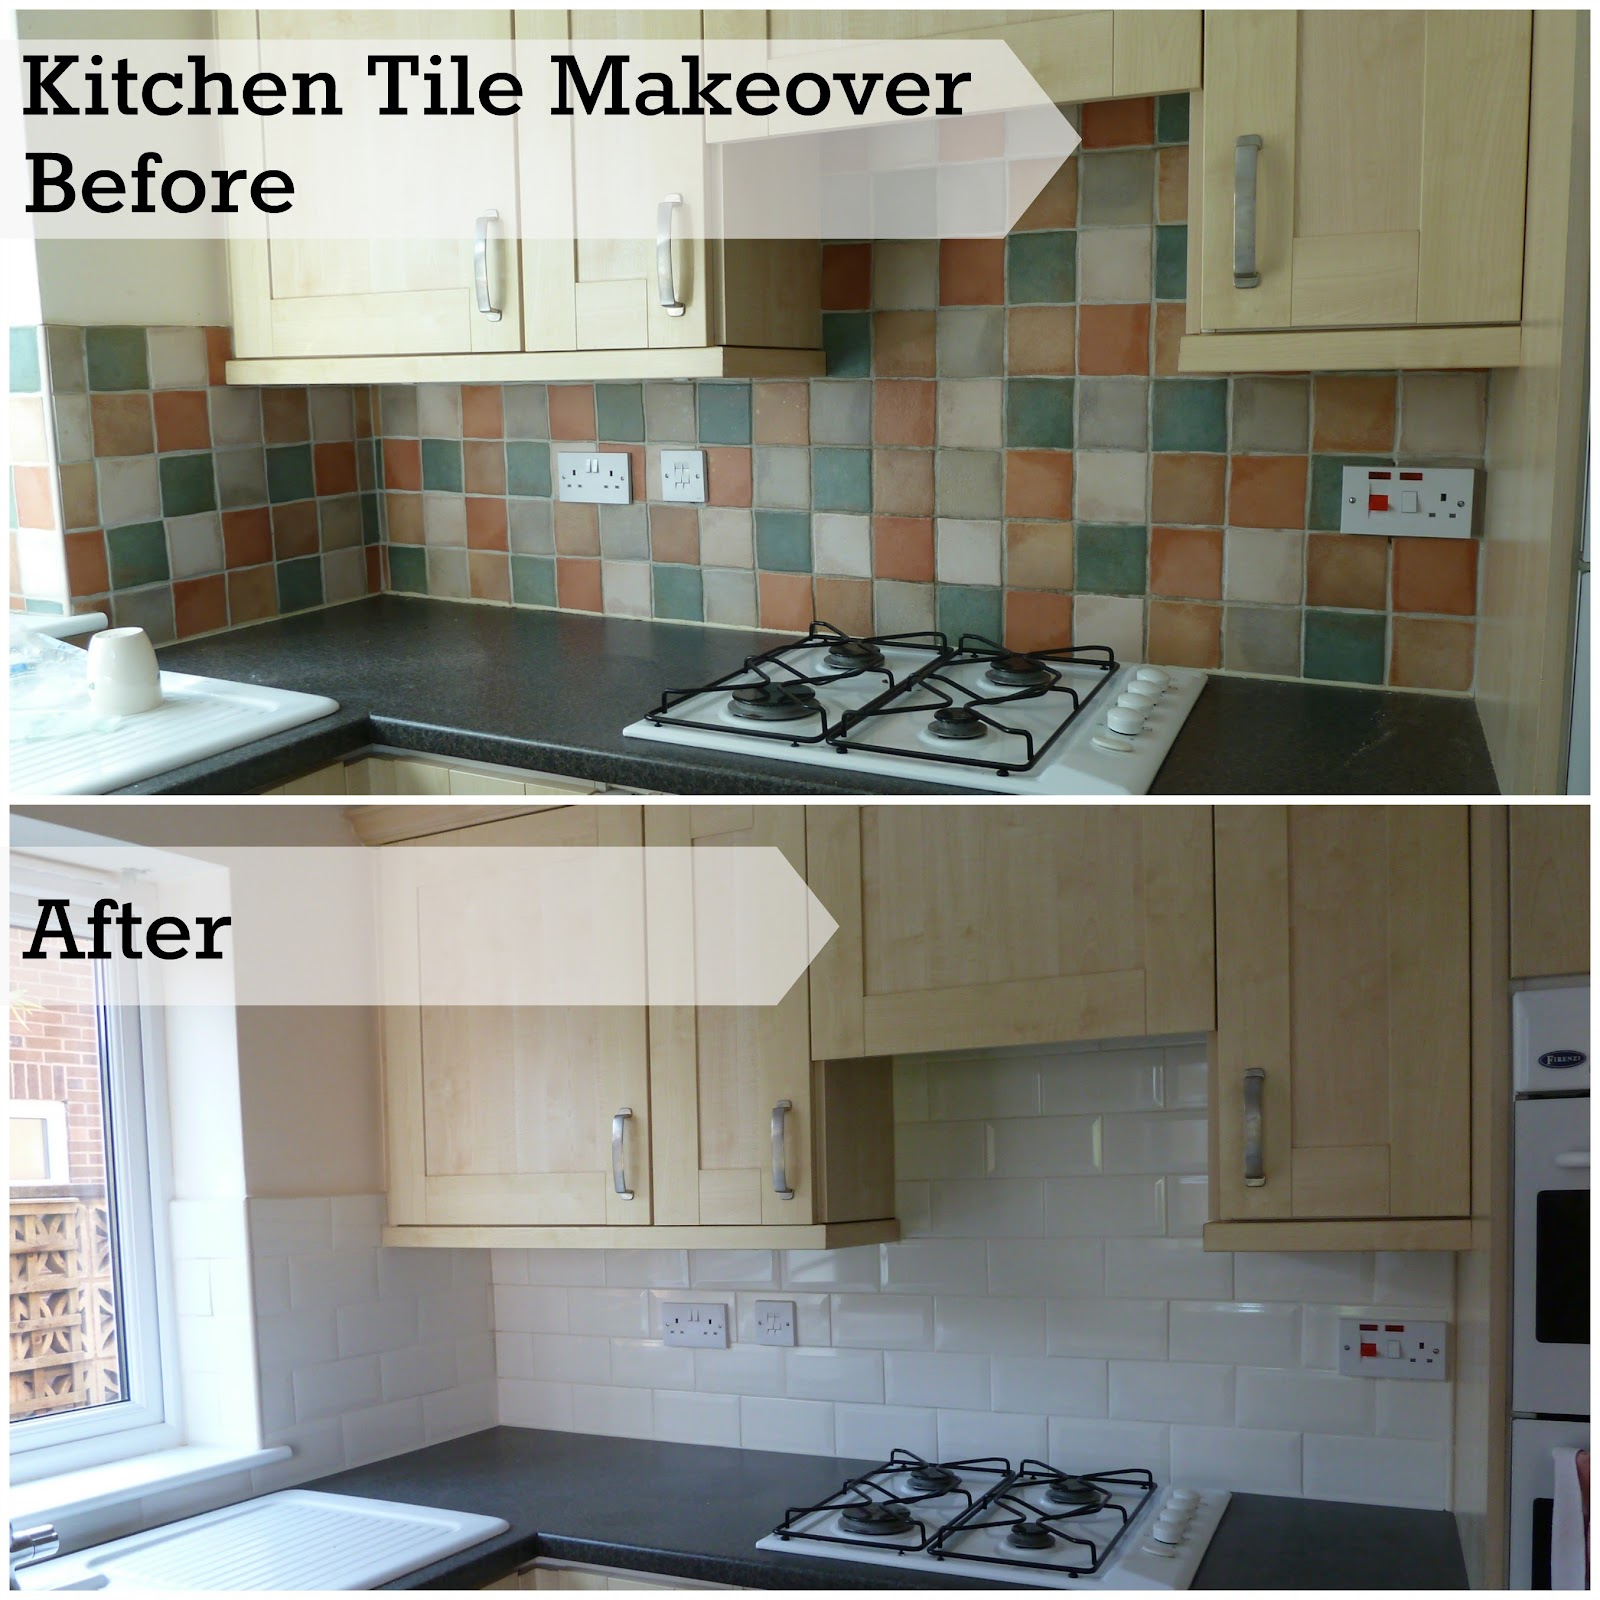 Refurbishing a kitchen new tiles